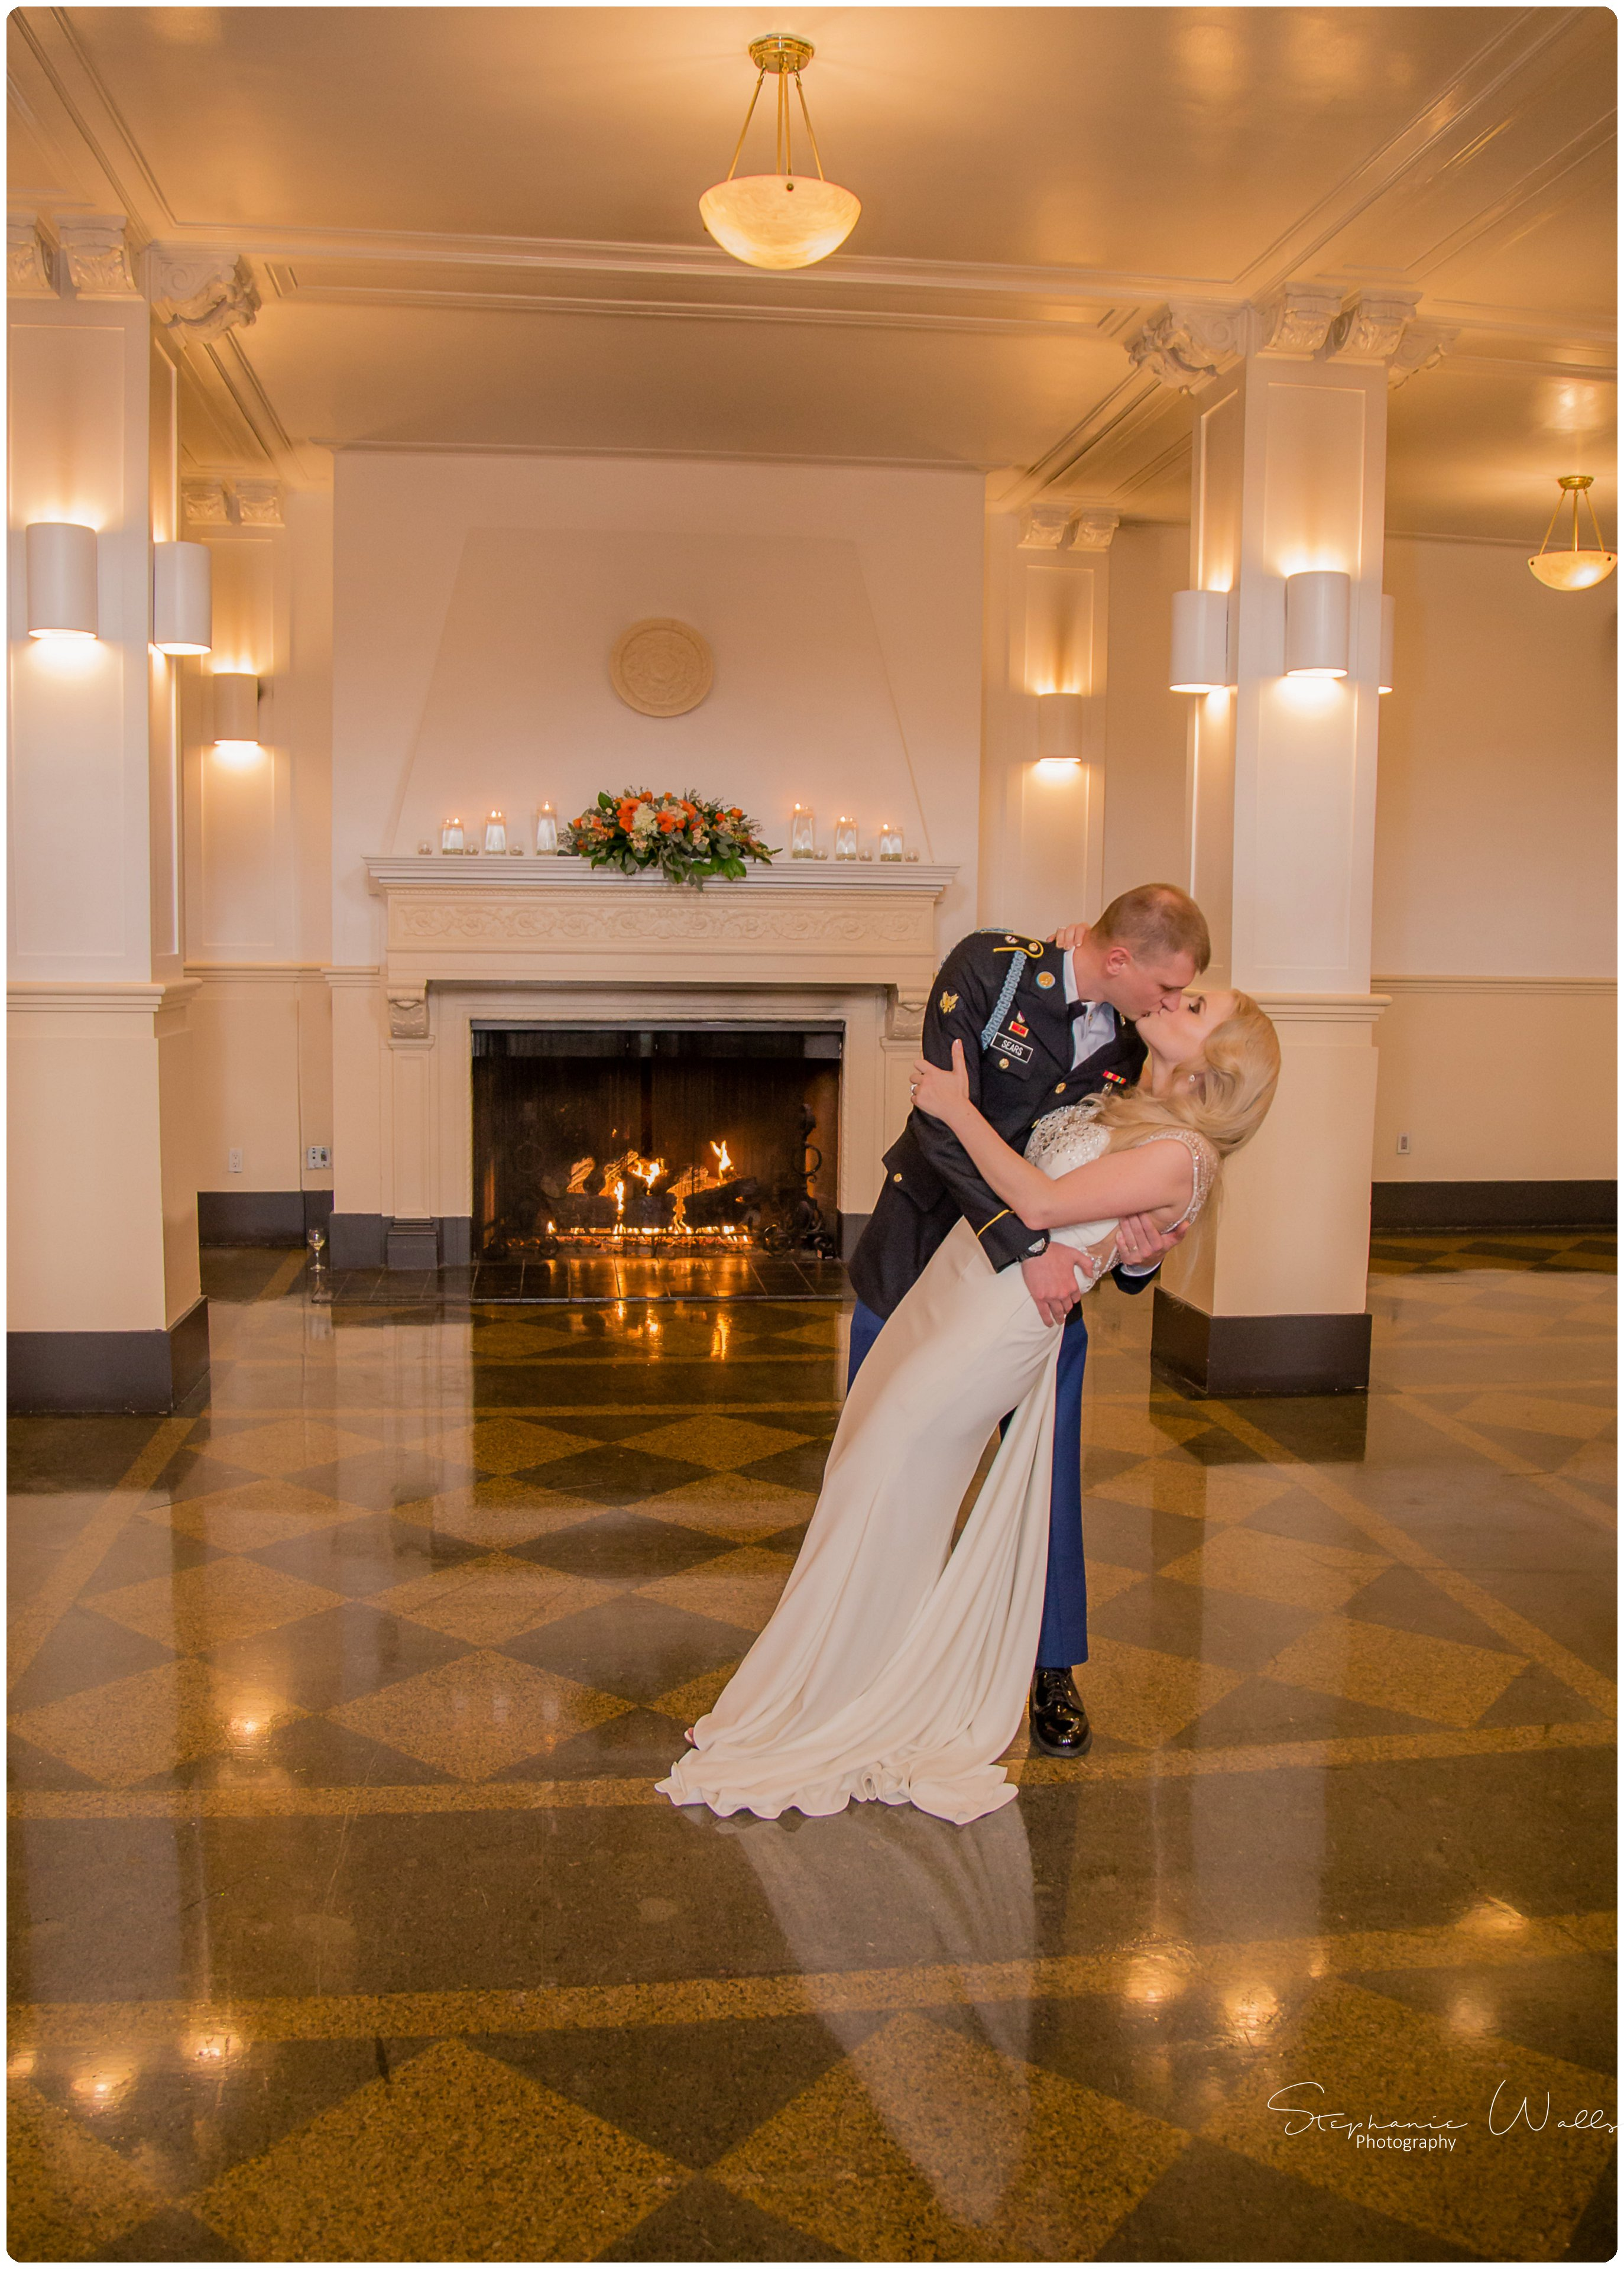 Sears Wedding Party Bridals 062 2 The Hero & The Starlet | Monte Cristo Ballroom | Stephanie Walls Photography Weddings